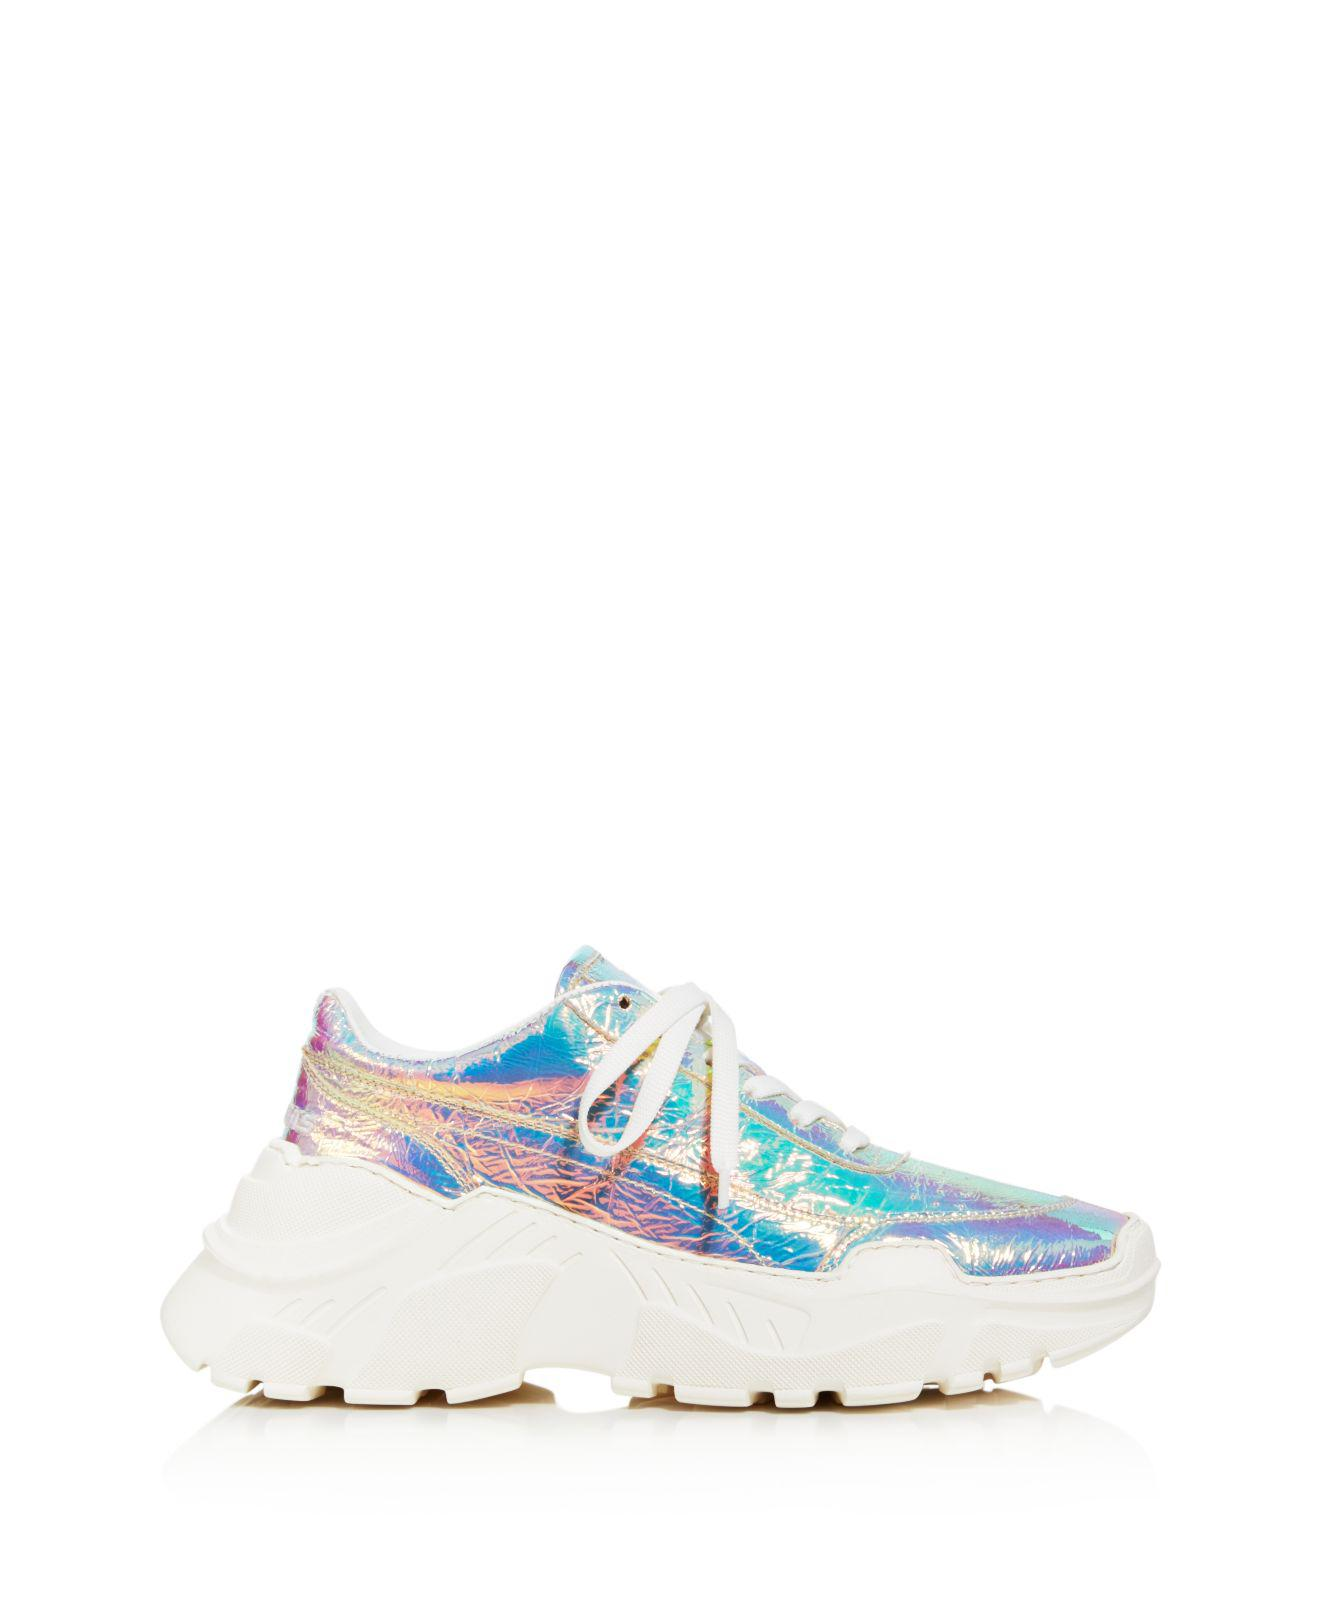 JOSHUA SANDERS Women's Leather & Holographic Foil Lace Up Sneakers il9pFAG